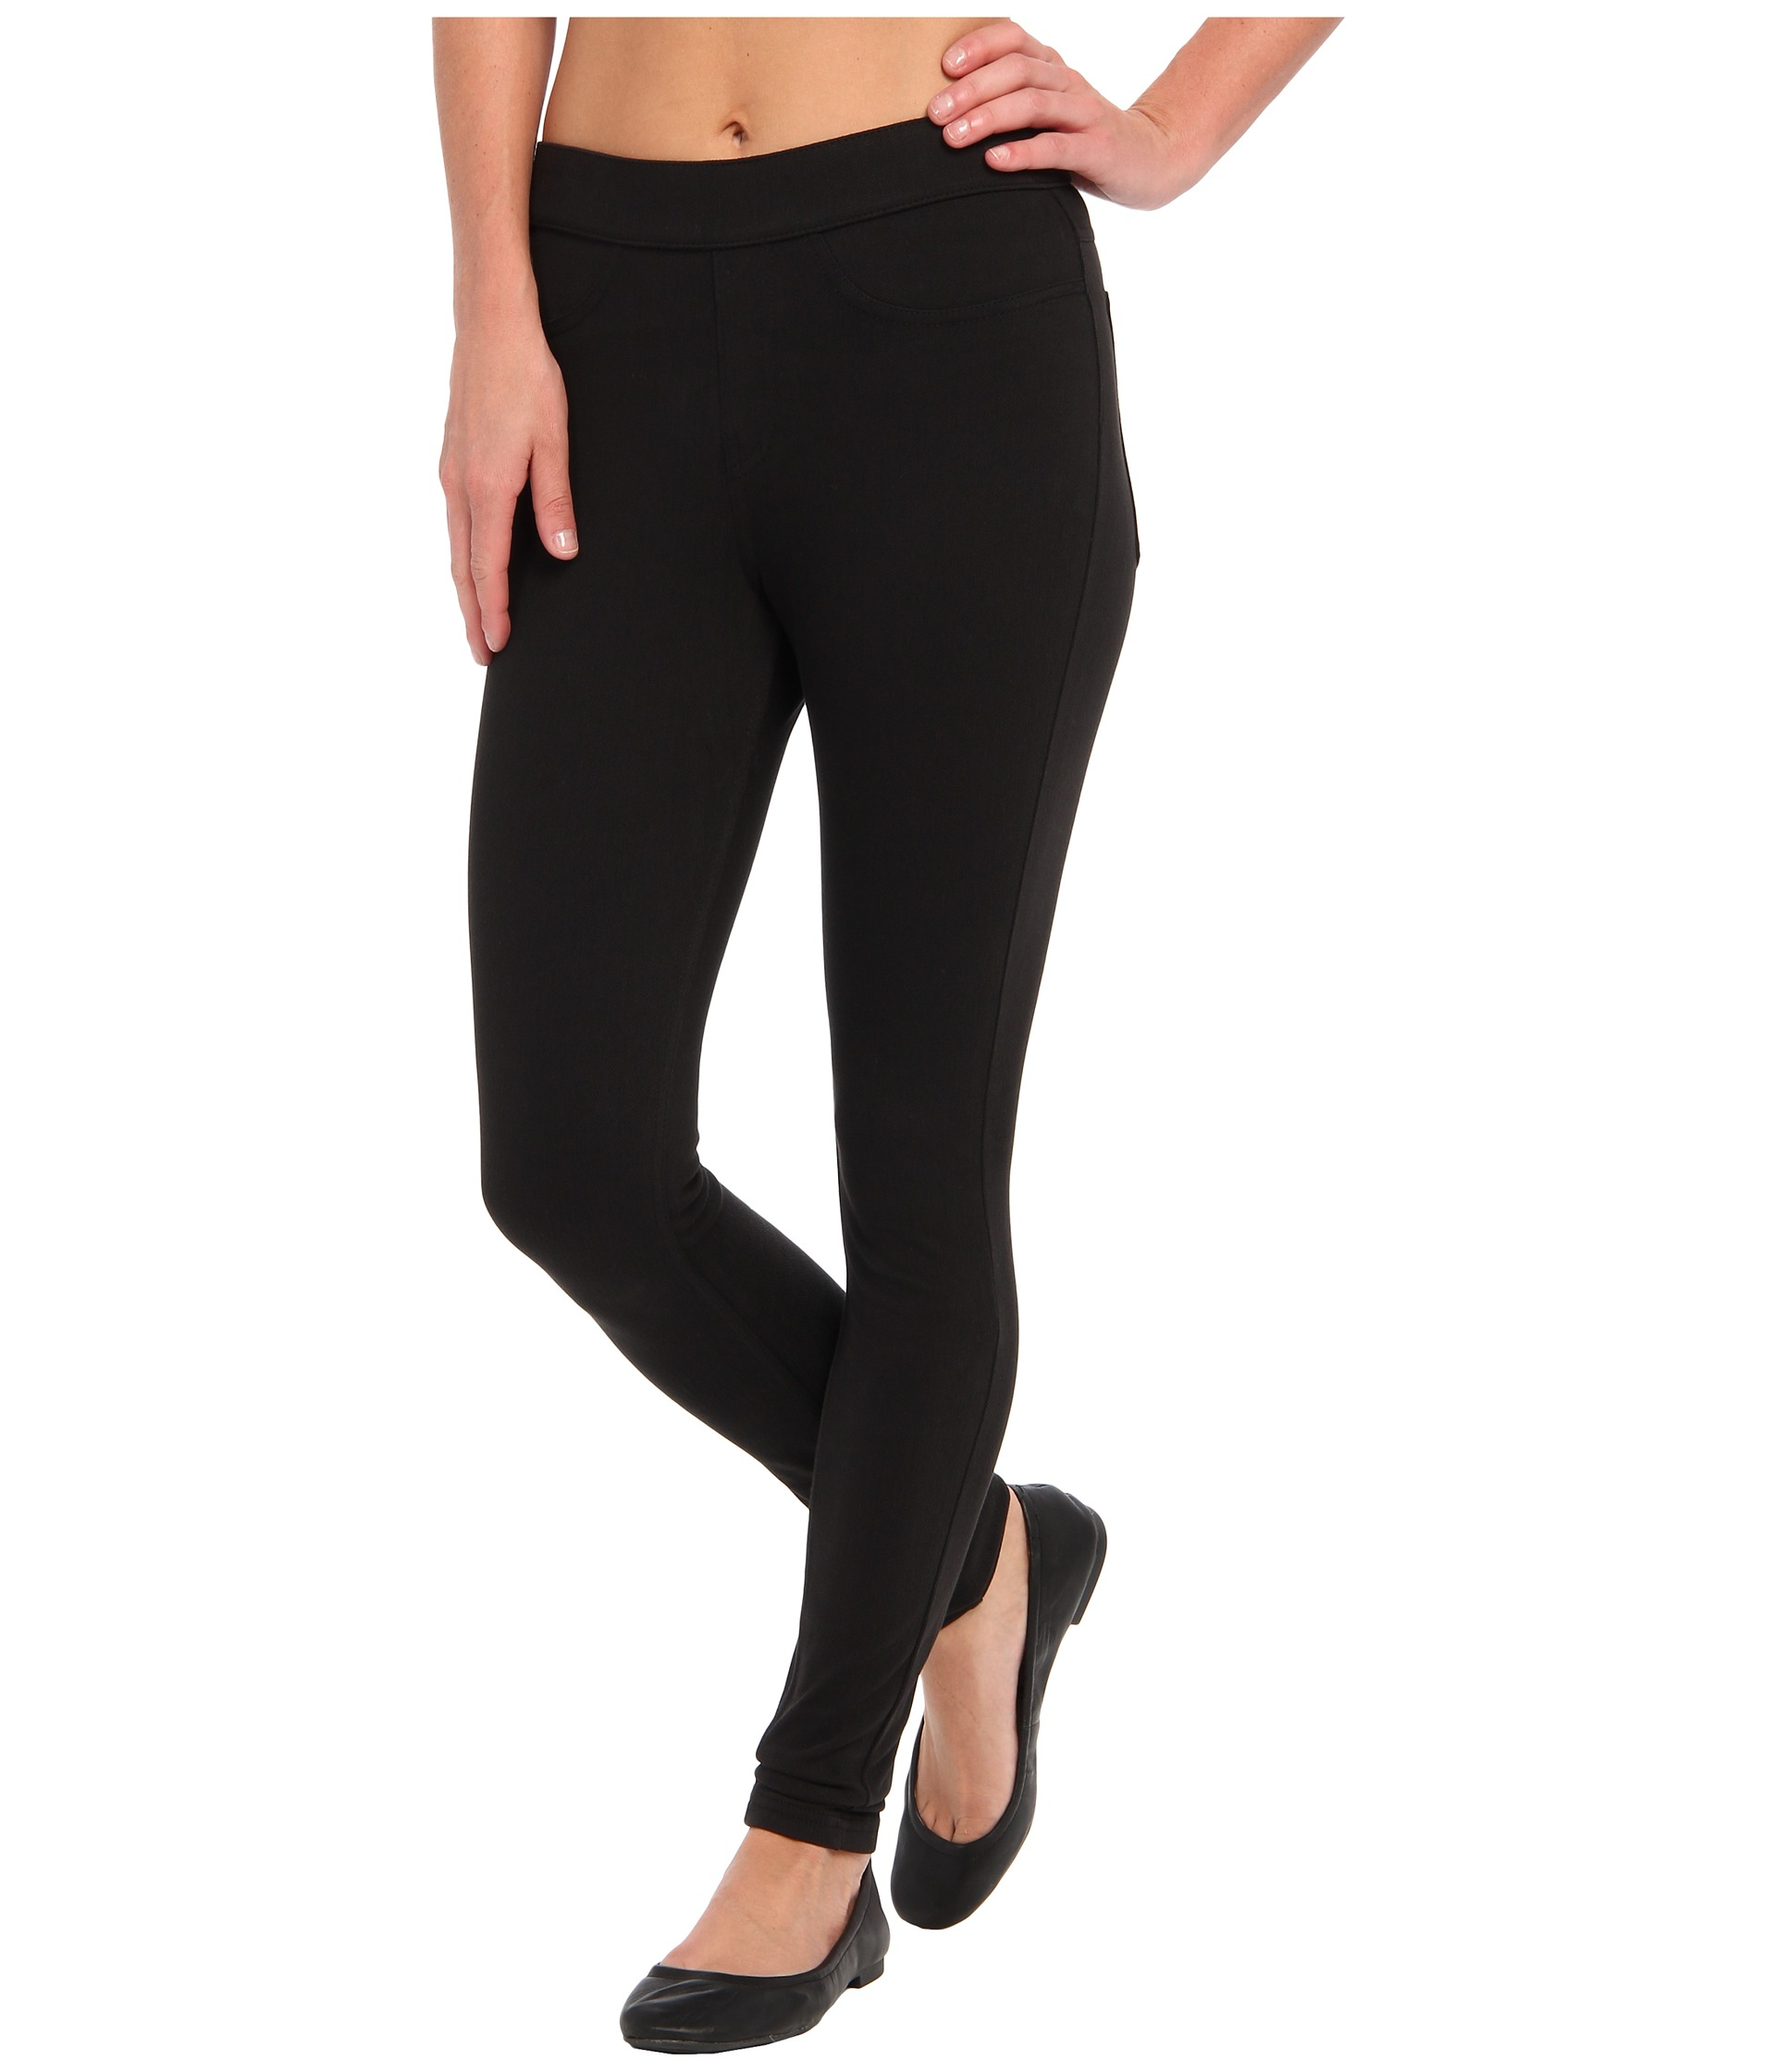 Shop White House | Black Market for a collection of curvy fit jeans available in various colors, washes and prints! Free shipping for WHBM Rewards members!